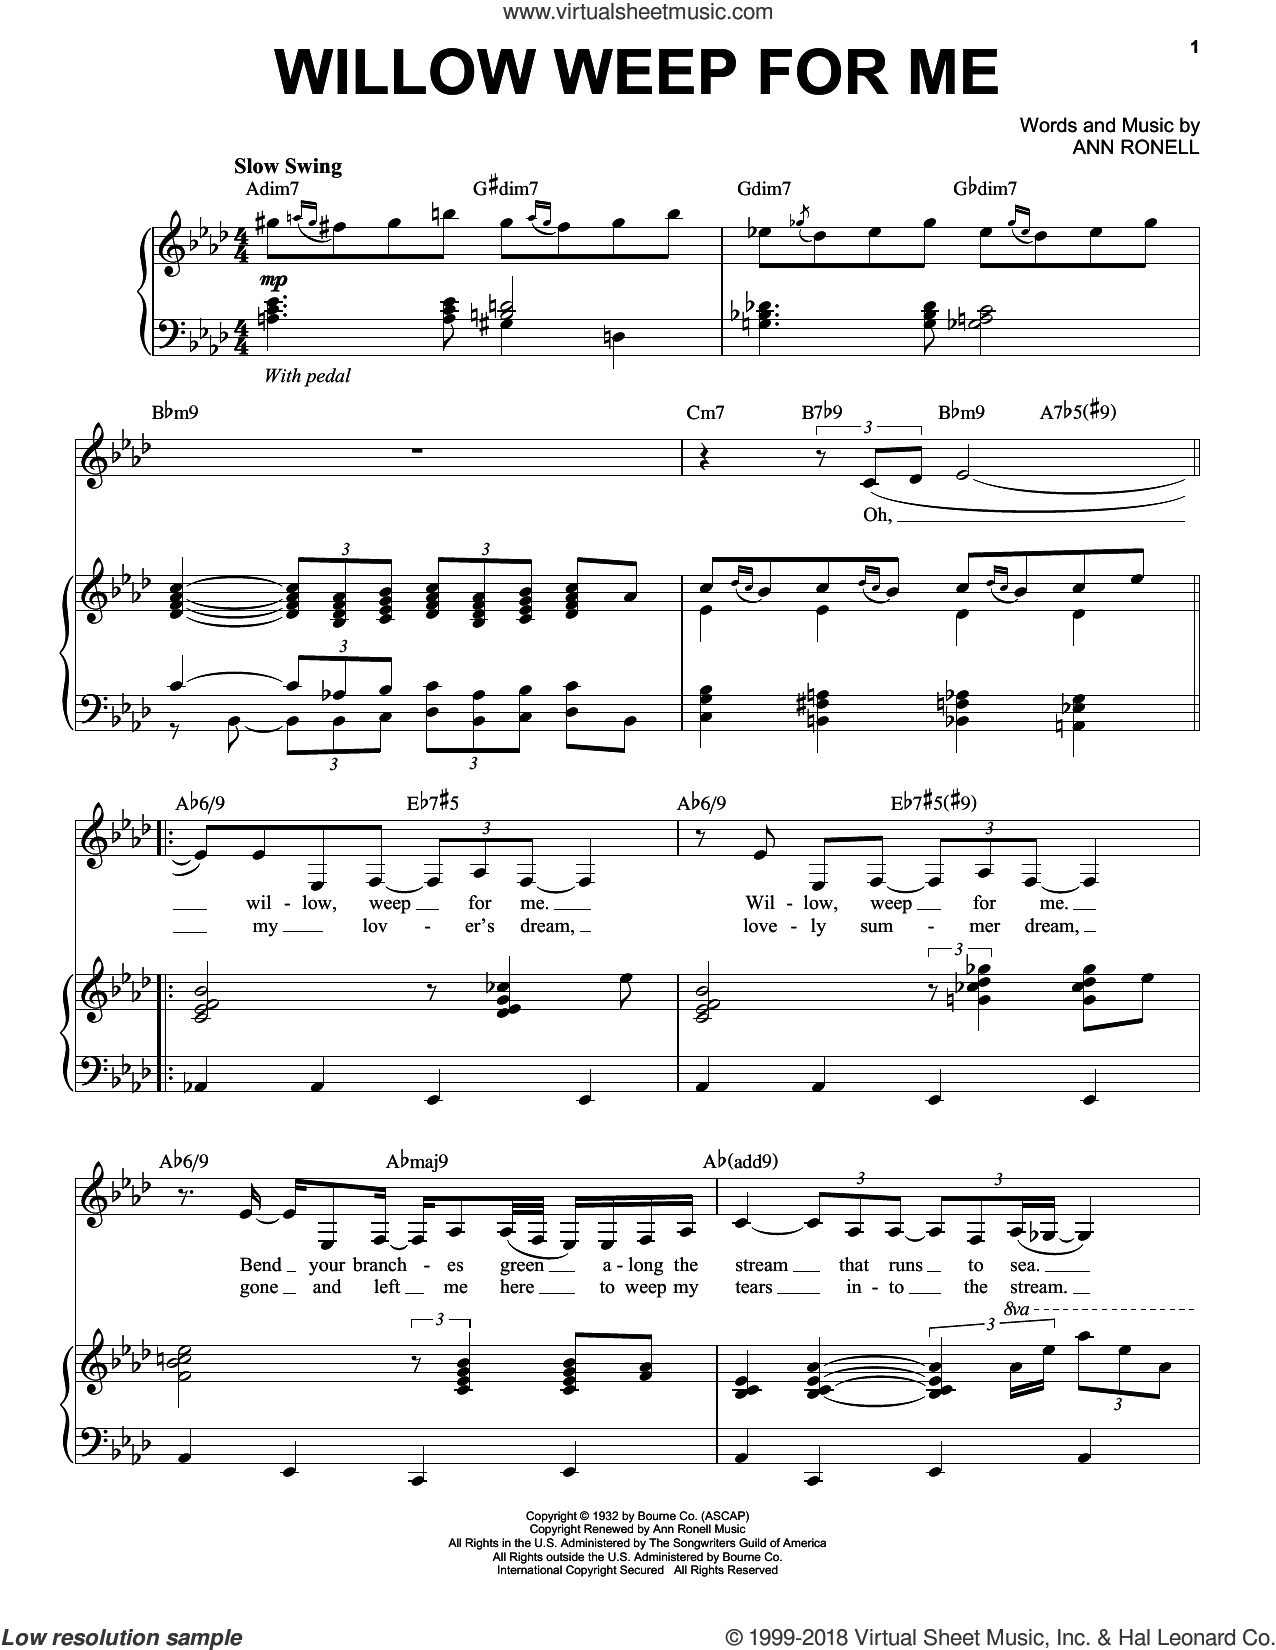 Willow Weep For Me sheet music for voice and piano by Nina Simone, Ann Ronell and Chad & Jeremy, intermediate skill level